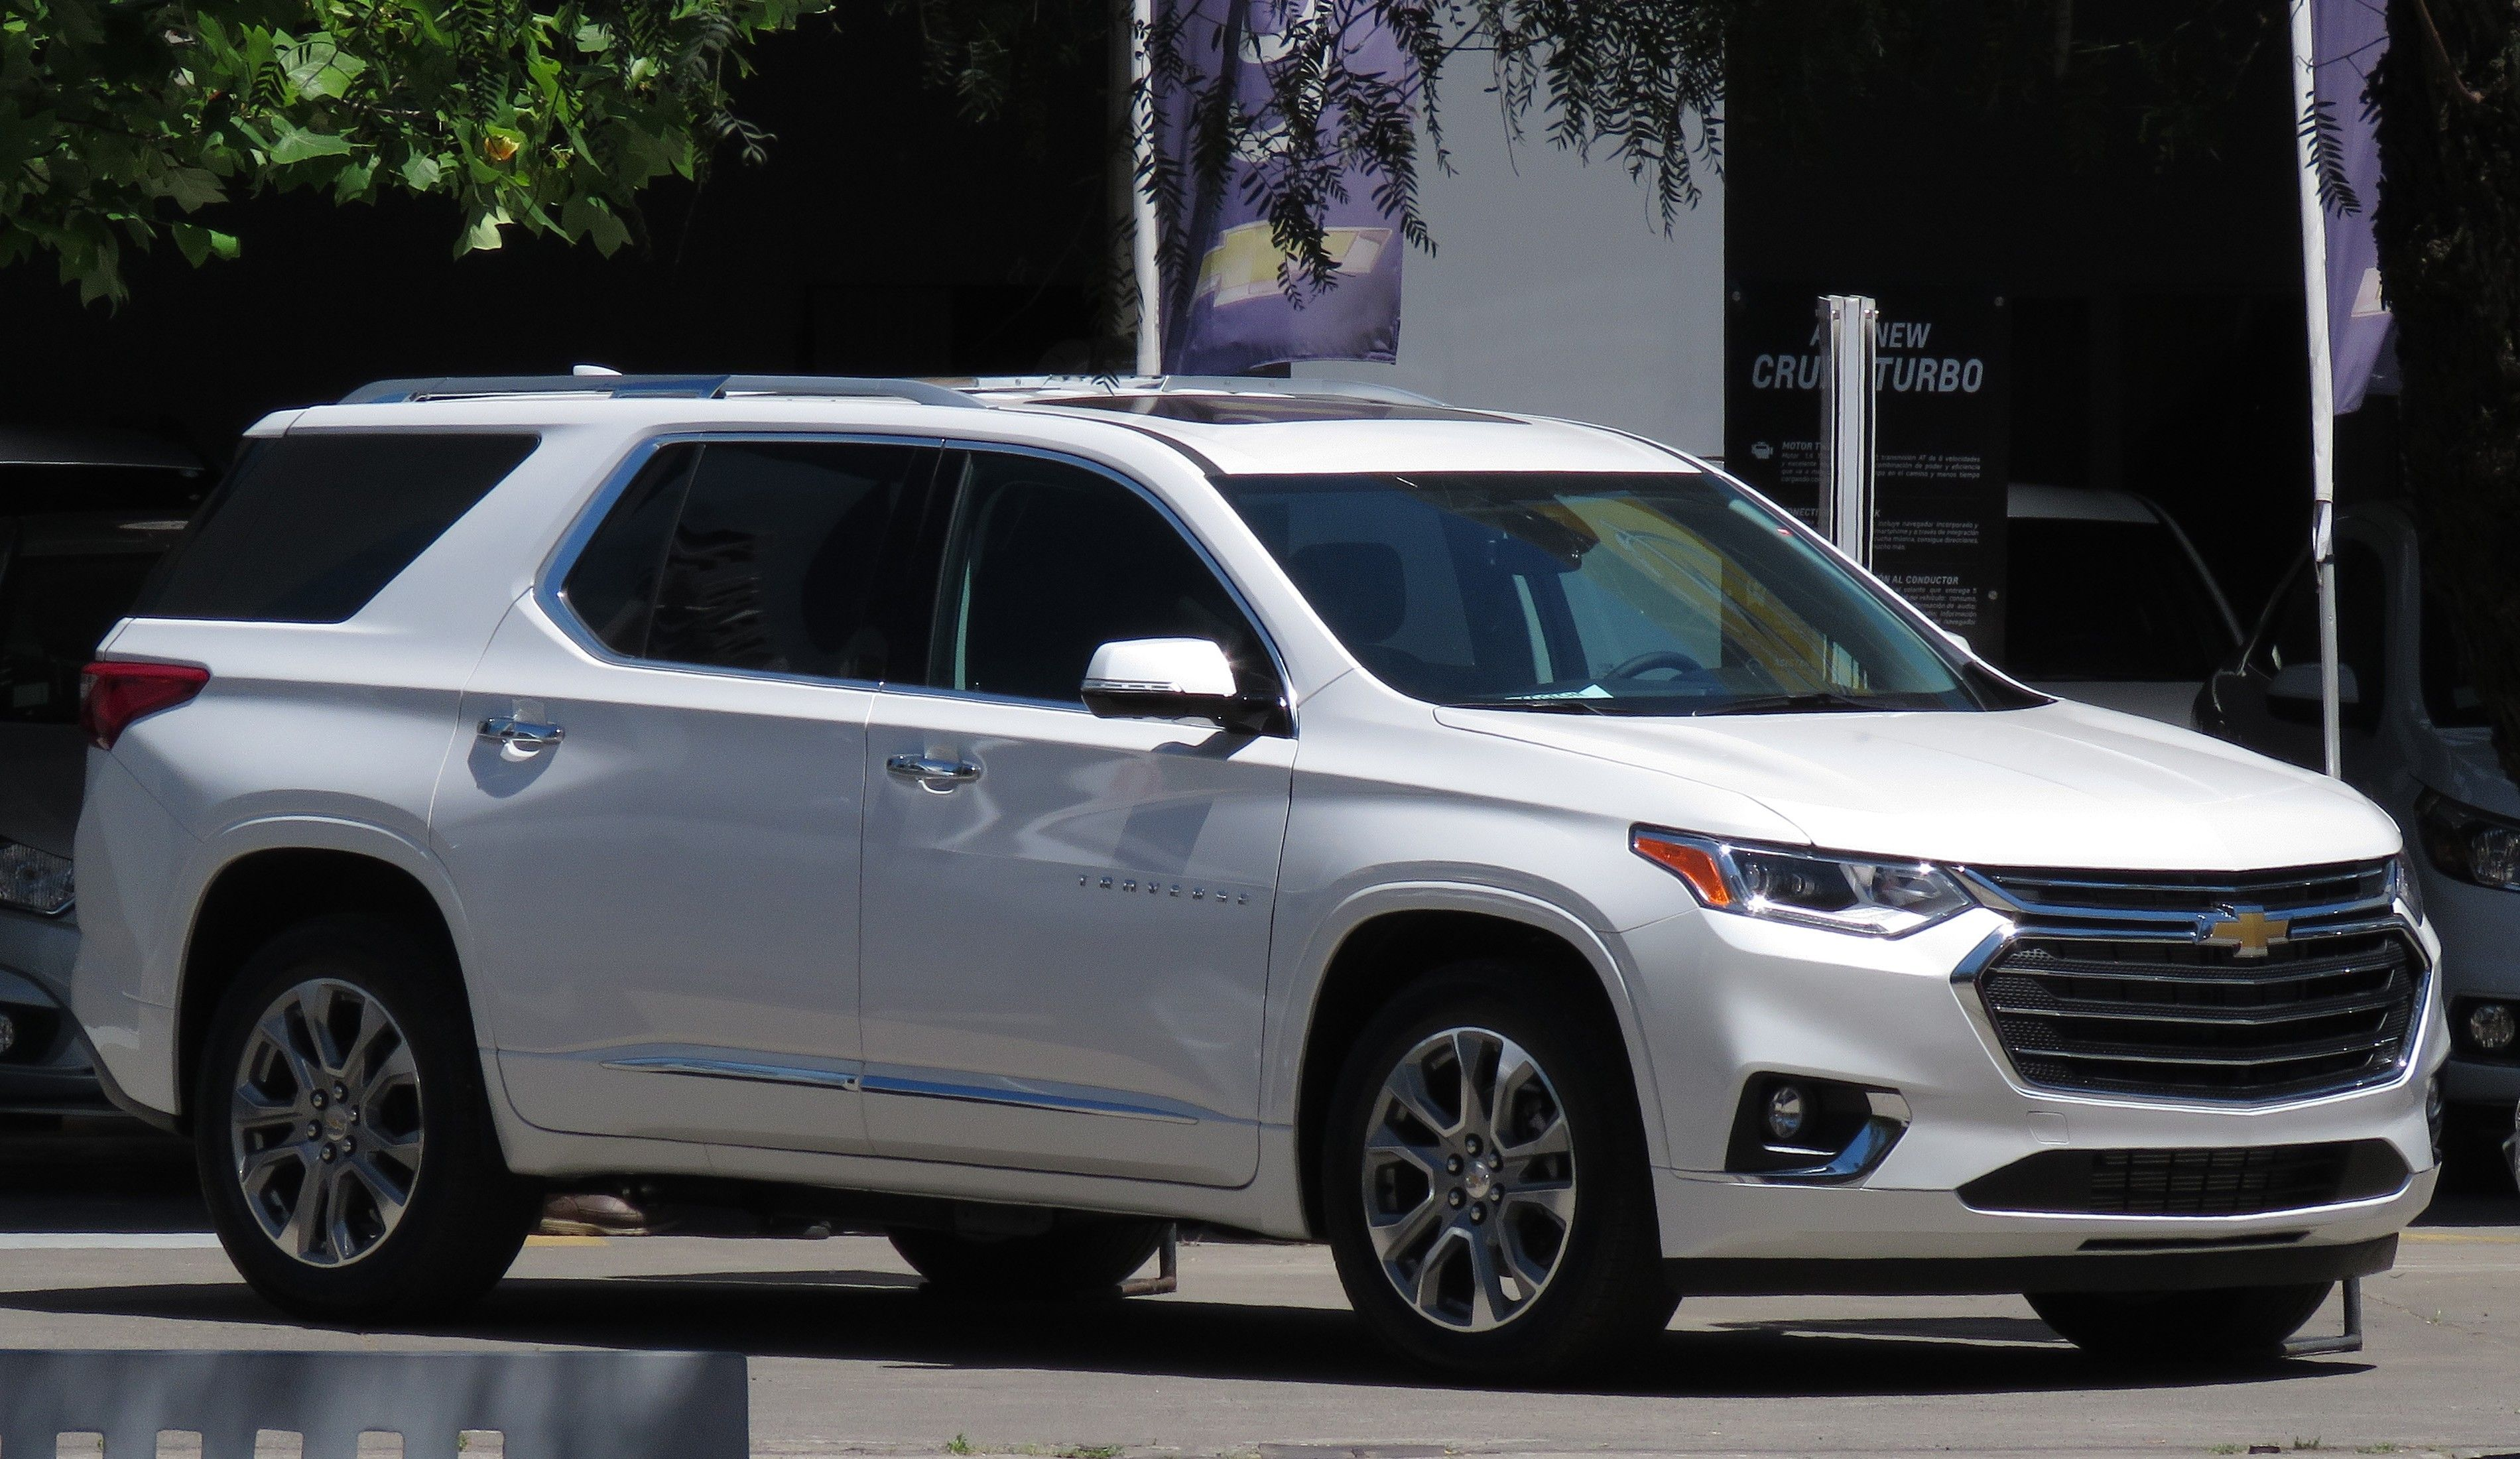 2019 Chevrolet Lumina Redesign Price And Review Car Gallery Chevrolet Traverse Chevy Trailblazer Chevrolet